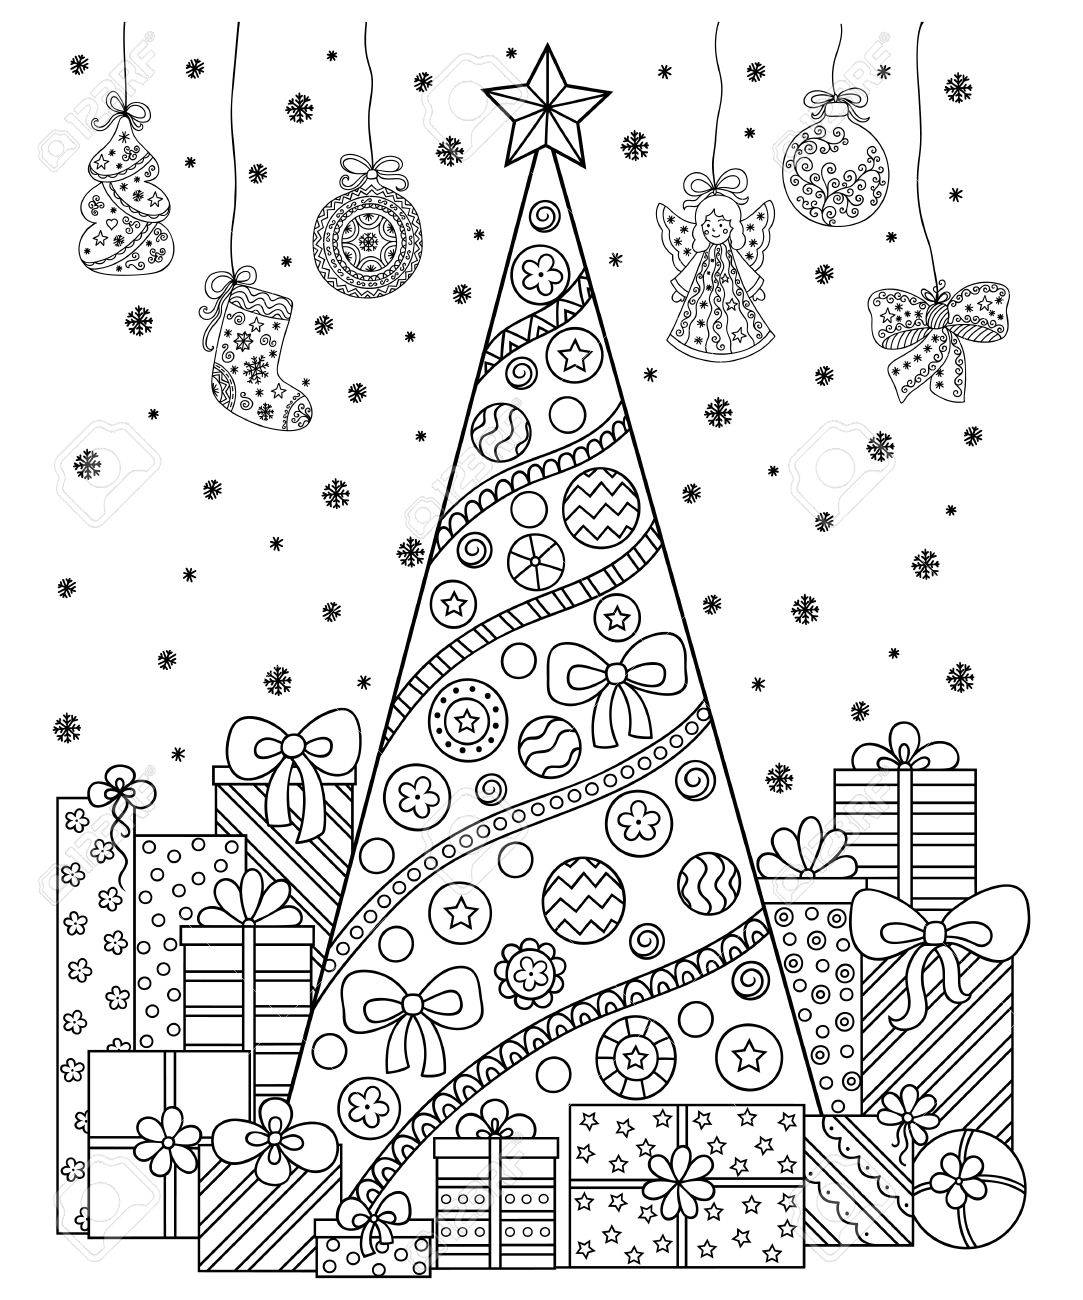 Doodle Pattern In Black And White Christmas Decorations Christmas Royalty Free Cliparts Vectors And Stock Illustration Image 65466434